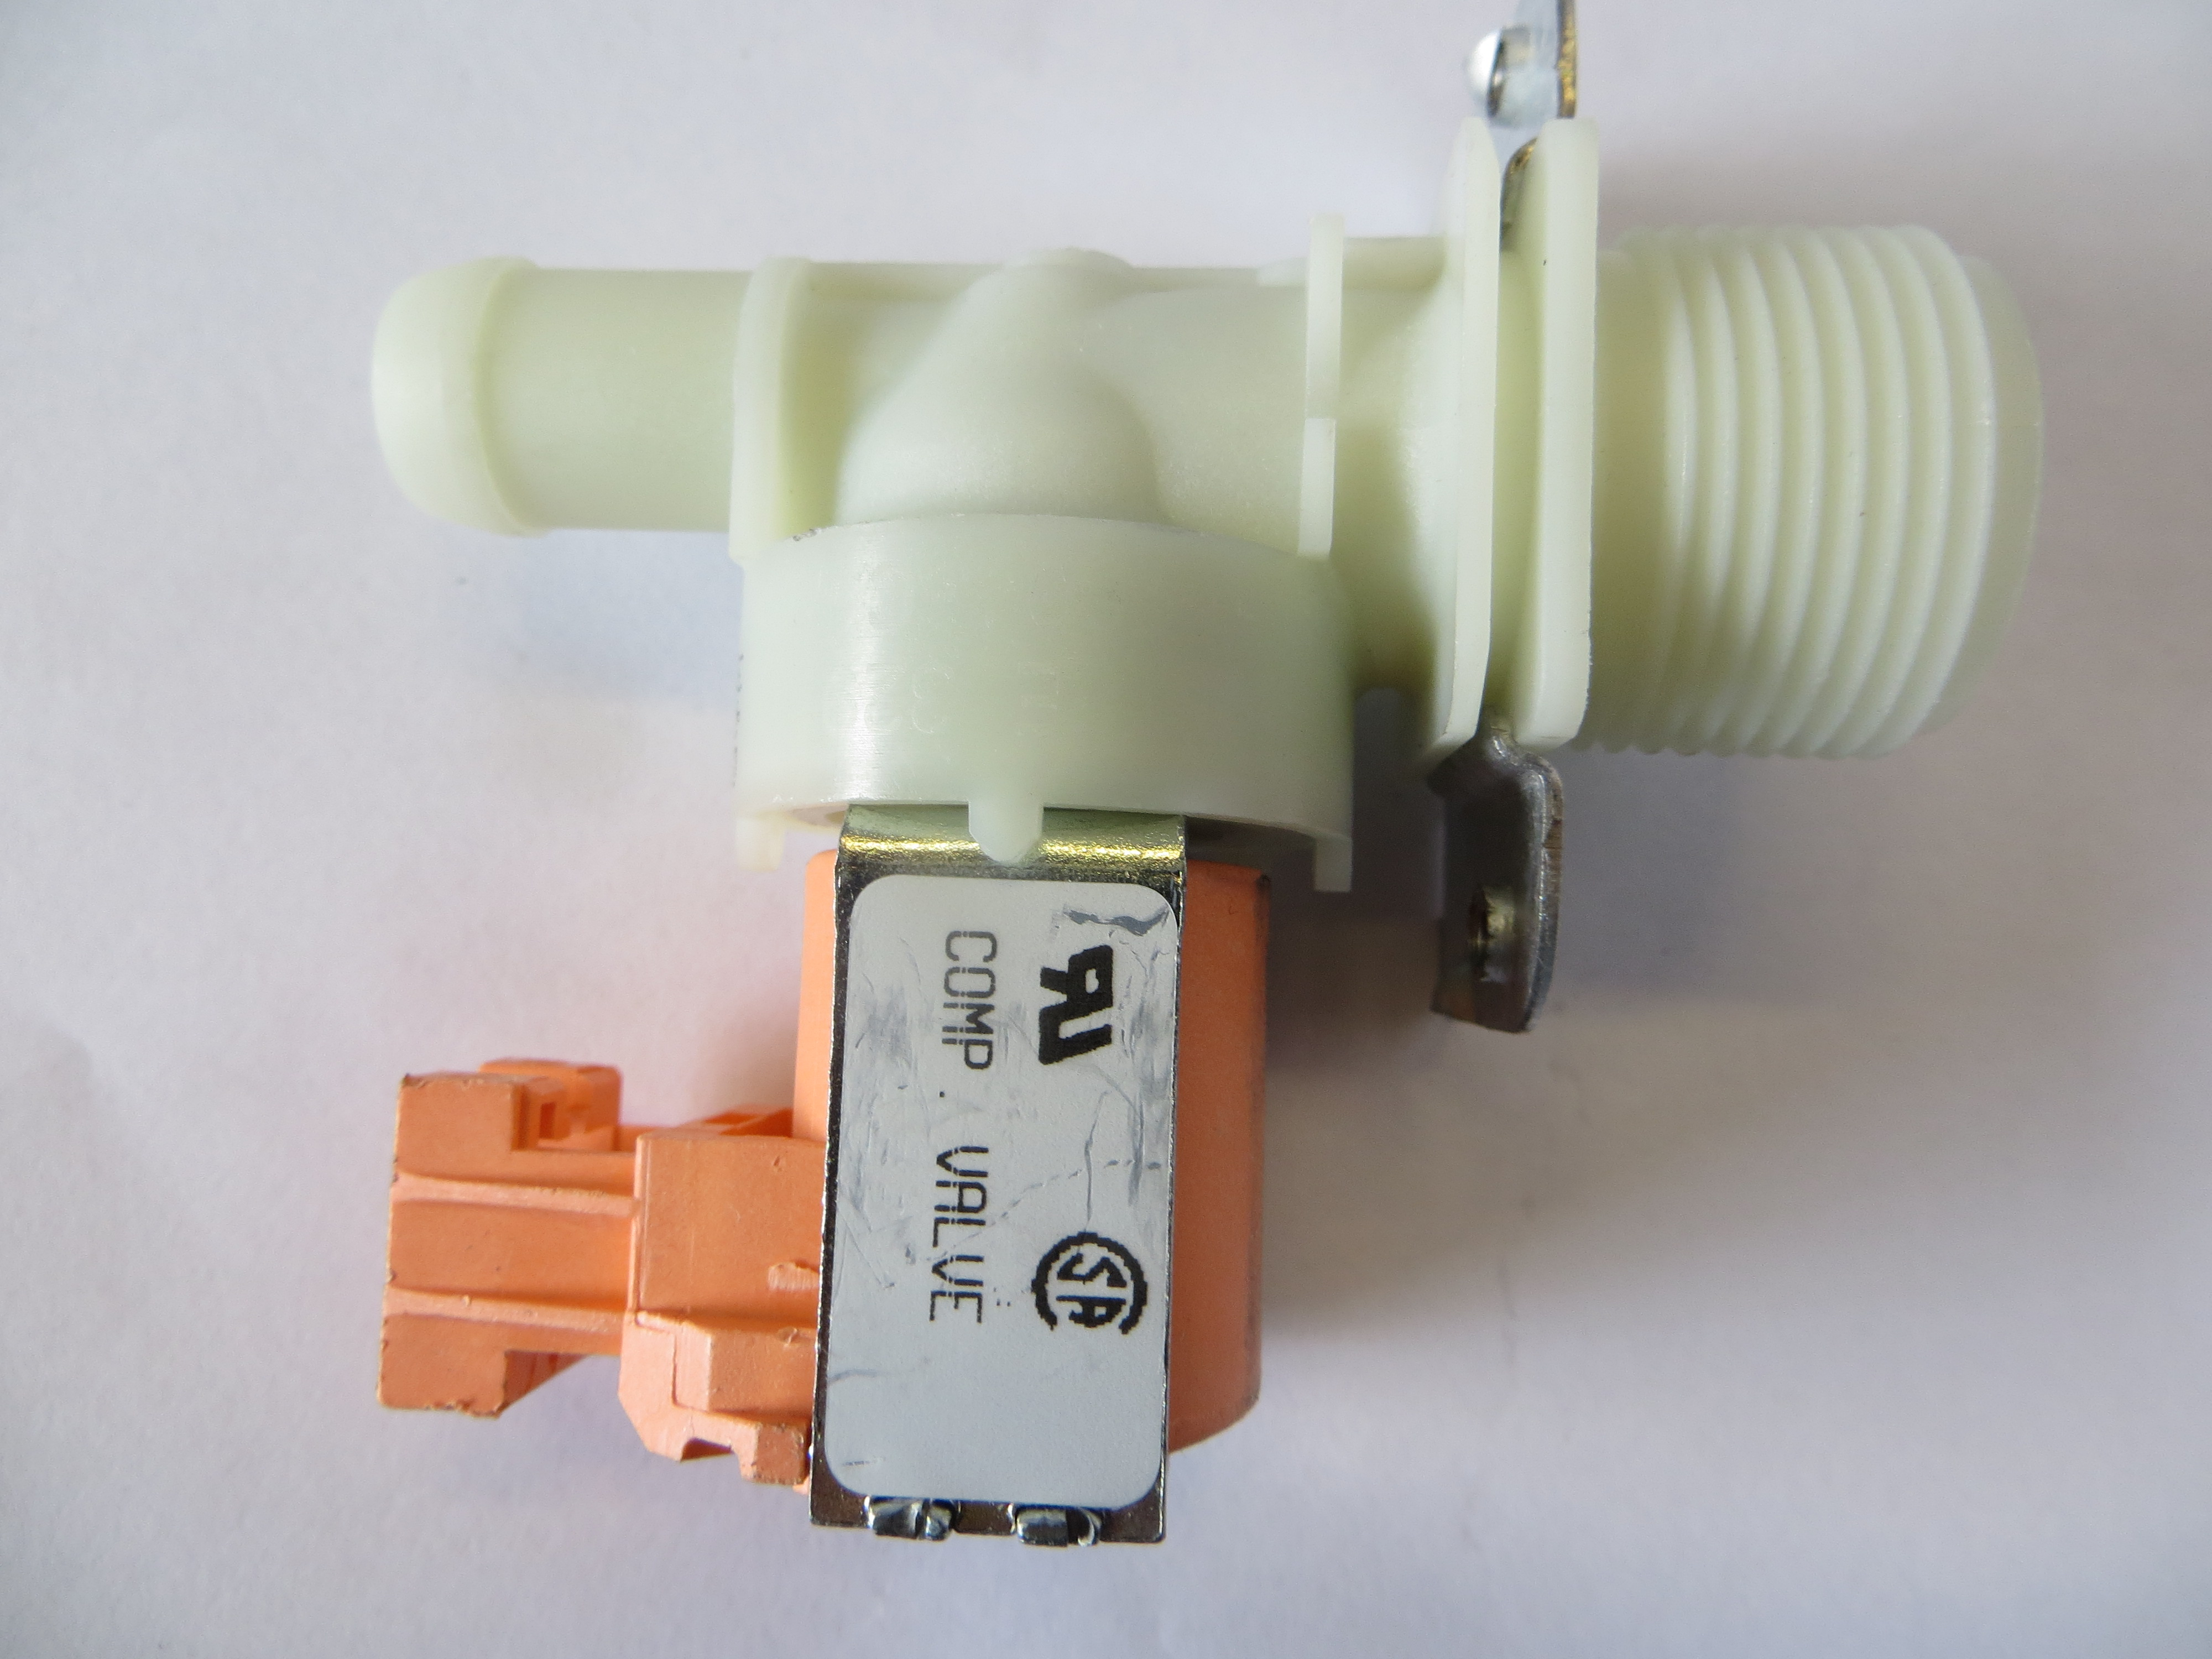 823454 - 1Way-Hot Water Inlet Valve